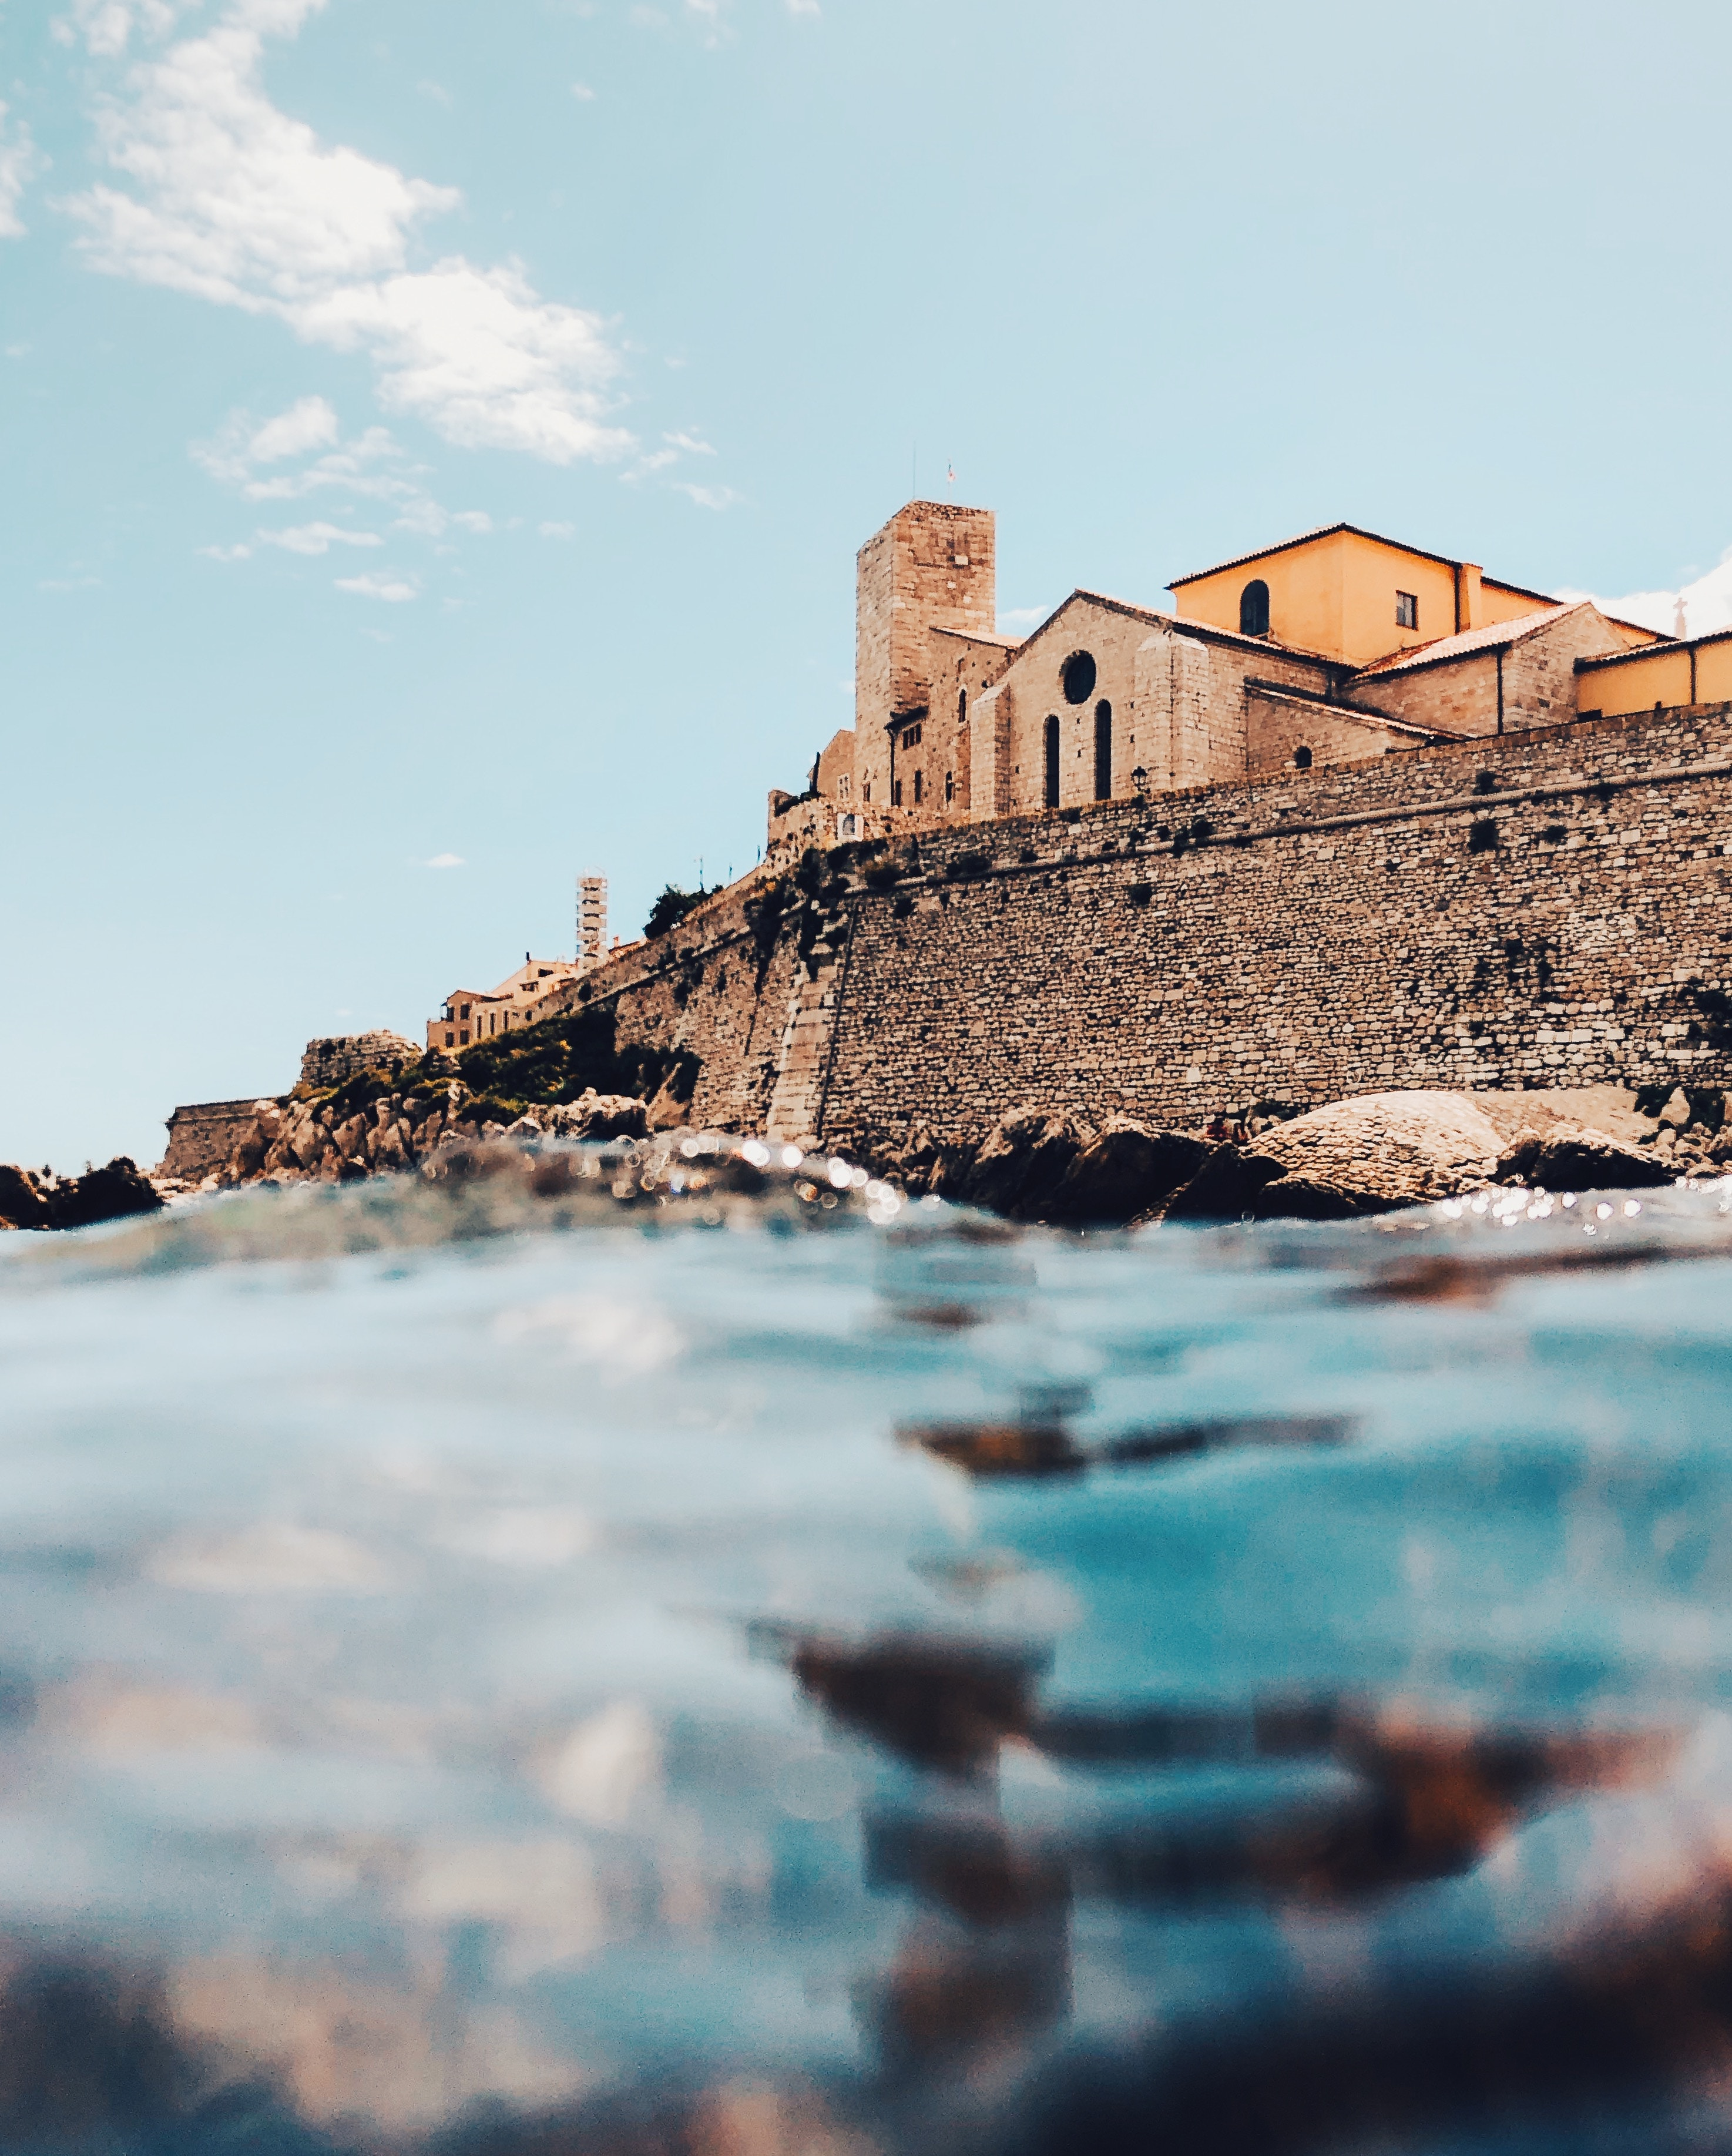 Antibes. France, Holiday, Beach, Destination, LocalBini, Europe, Water, Castle